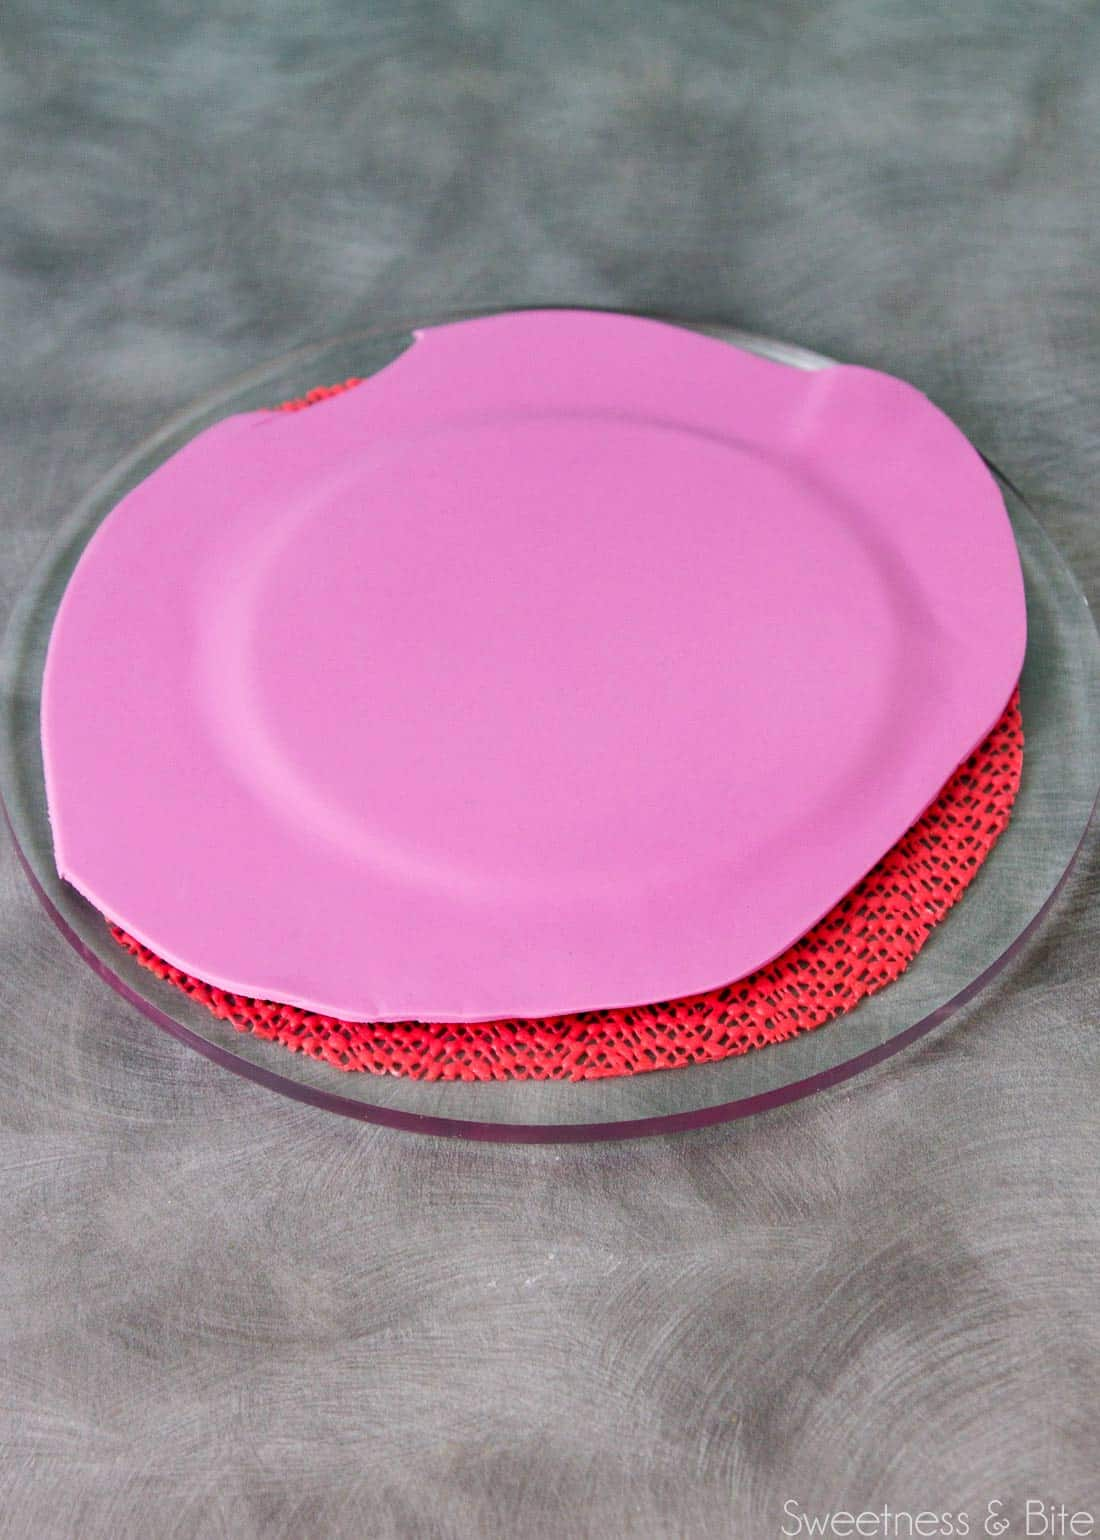 Purple fondant covering a small round cake card.